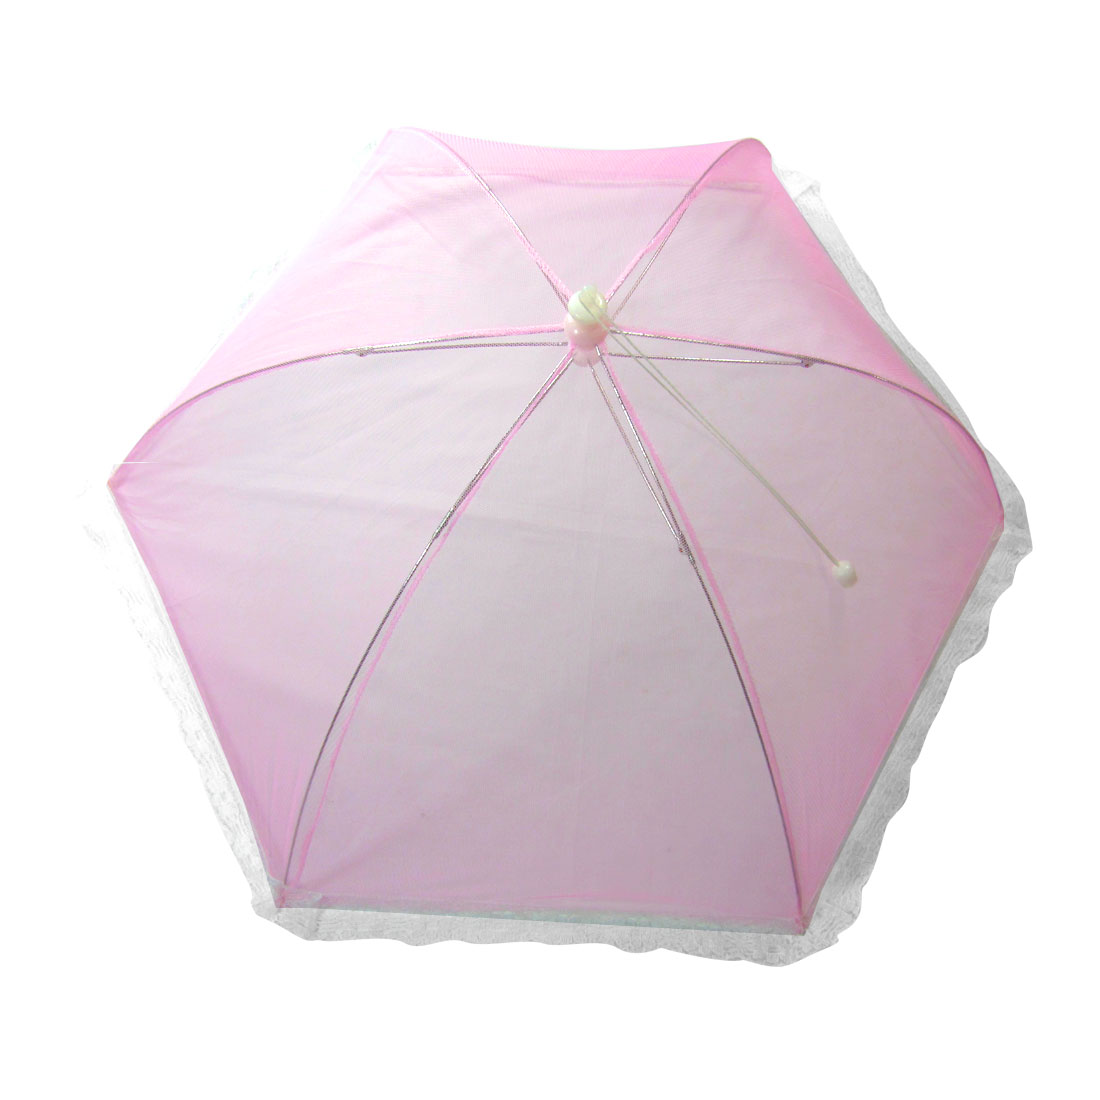 Pink Foldable Umbrella Style White Lace Metal Frame Table Food Cover